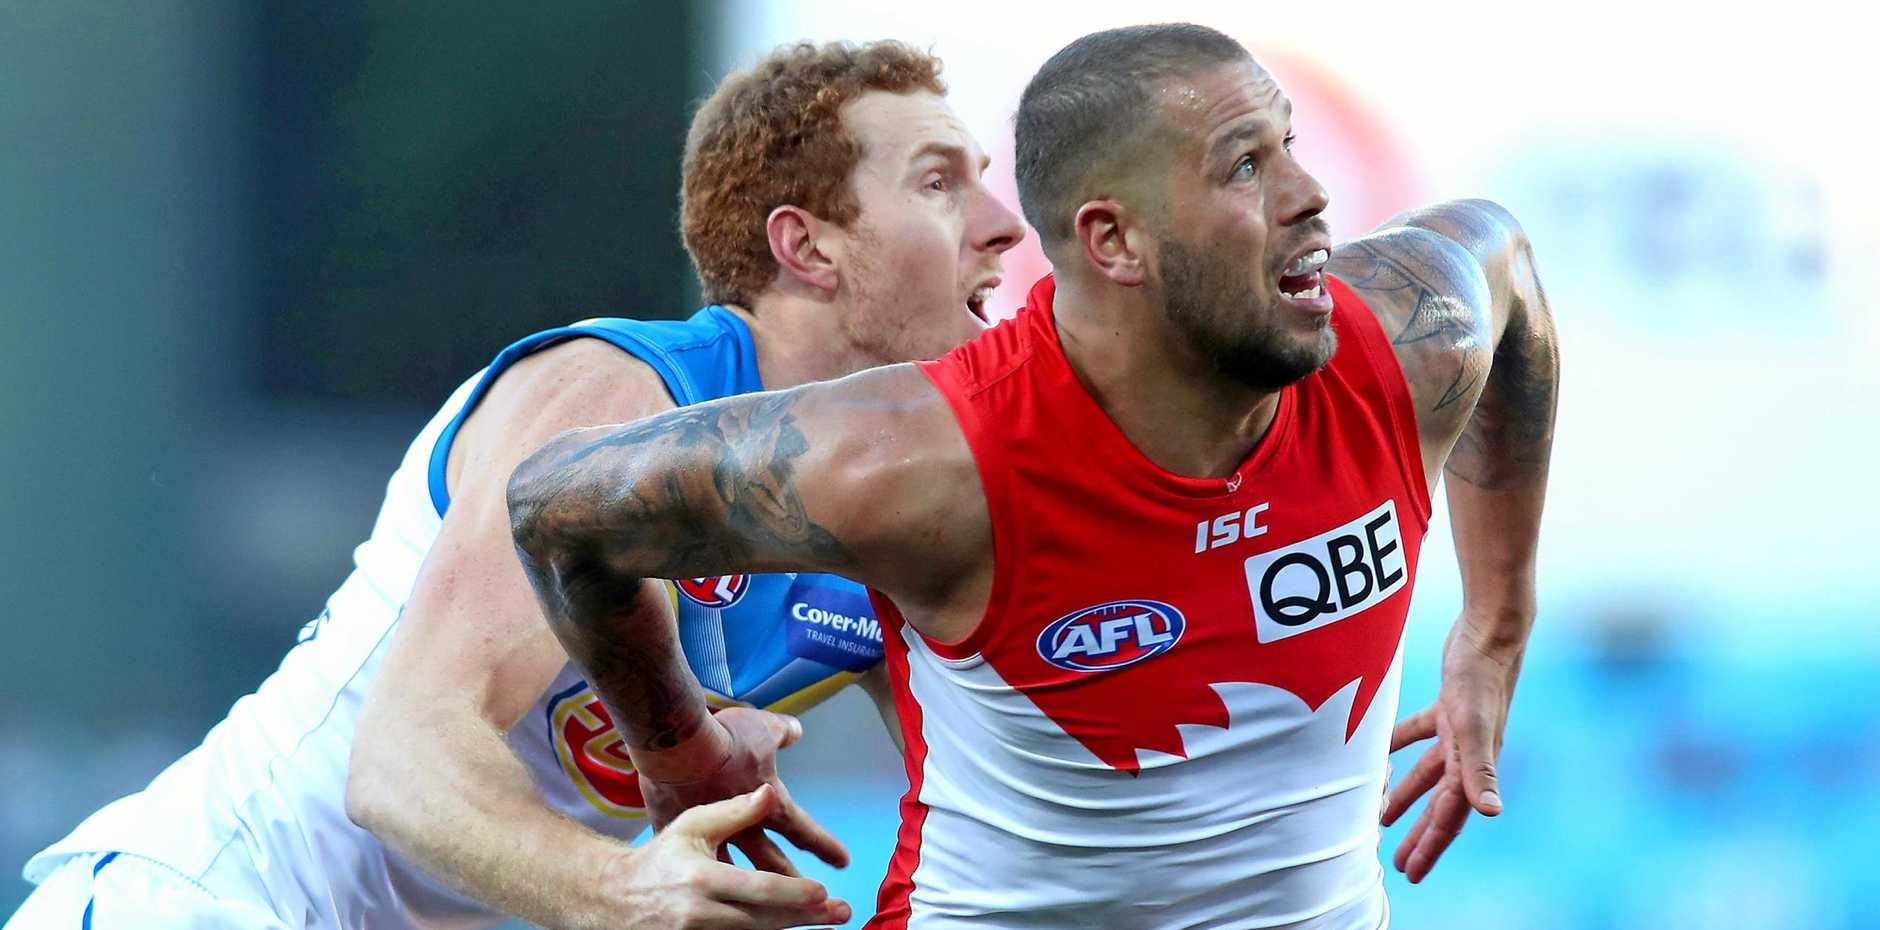 AFL AT OAKES: Seating is already sold out for the inaugural AFL match between the Sydney Swans and the Gold Coast Suns at Oakes Oval on March 10, 2019.